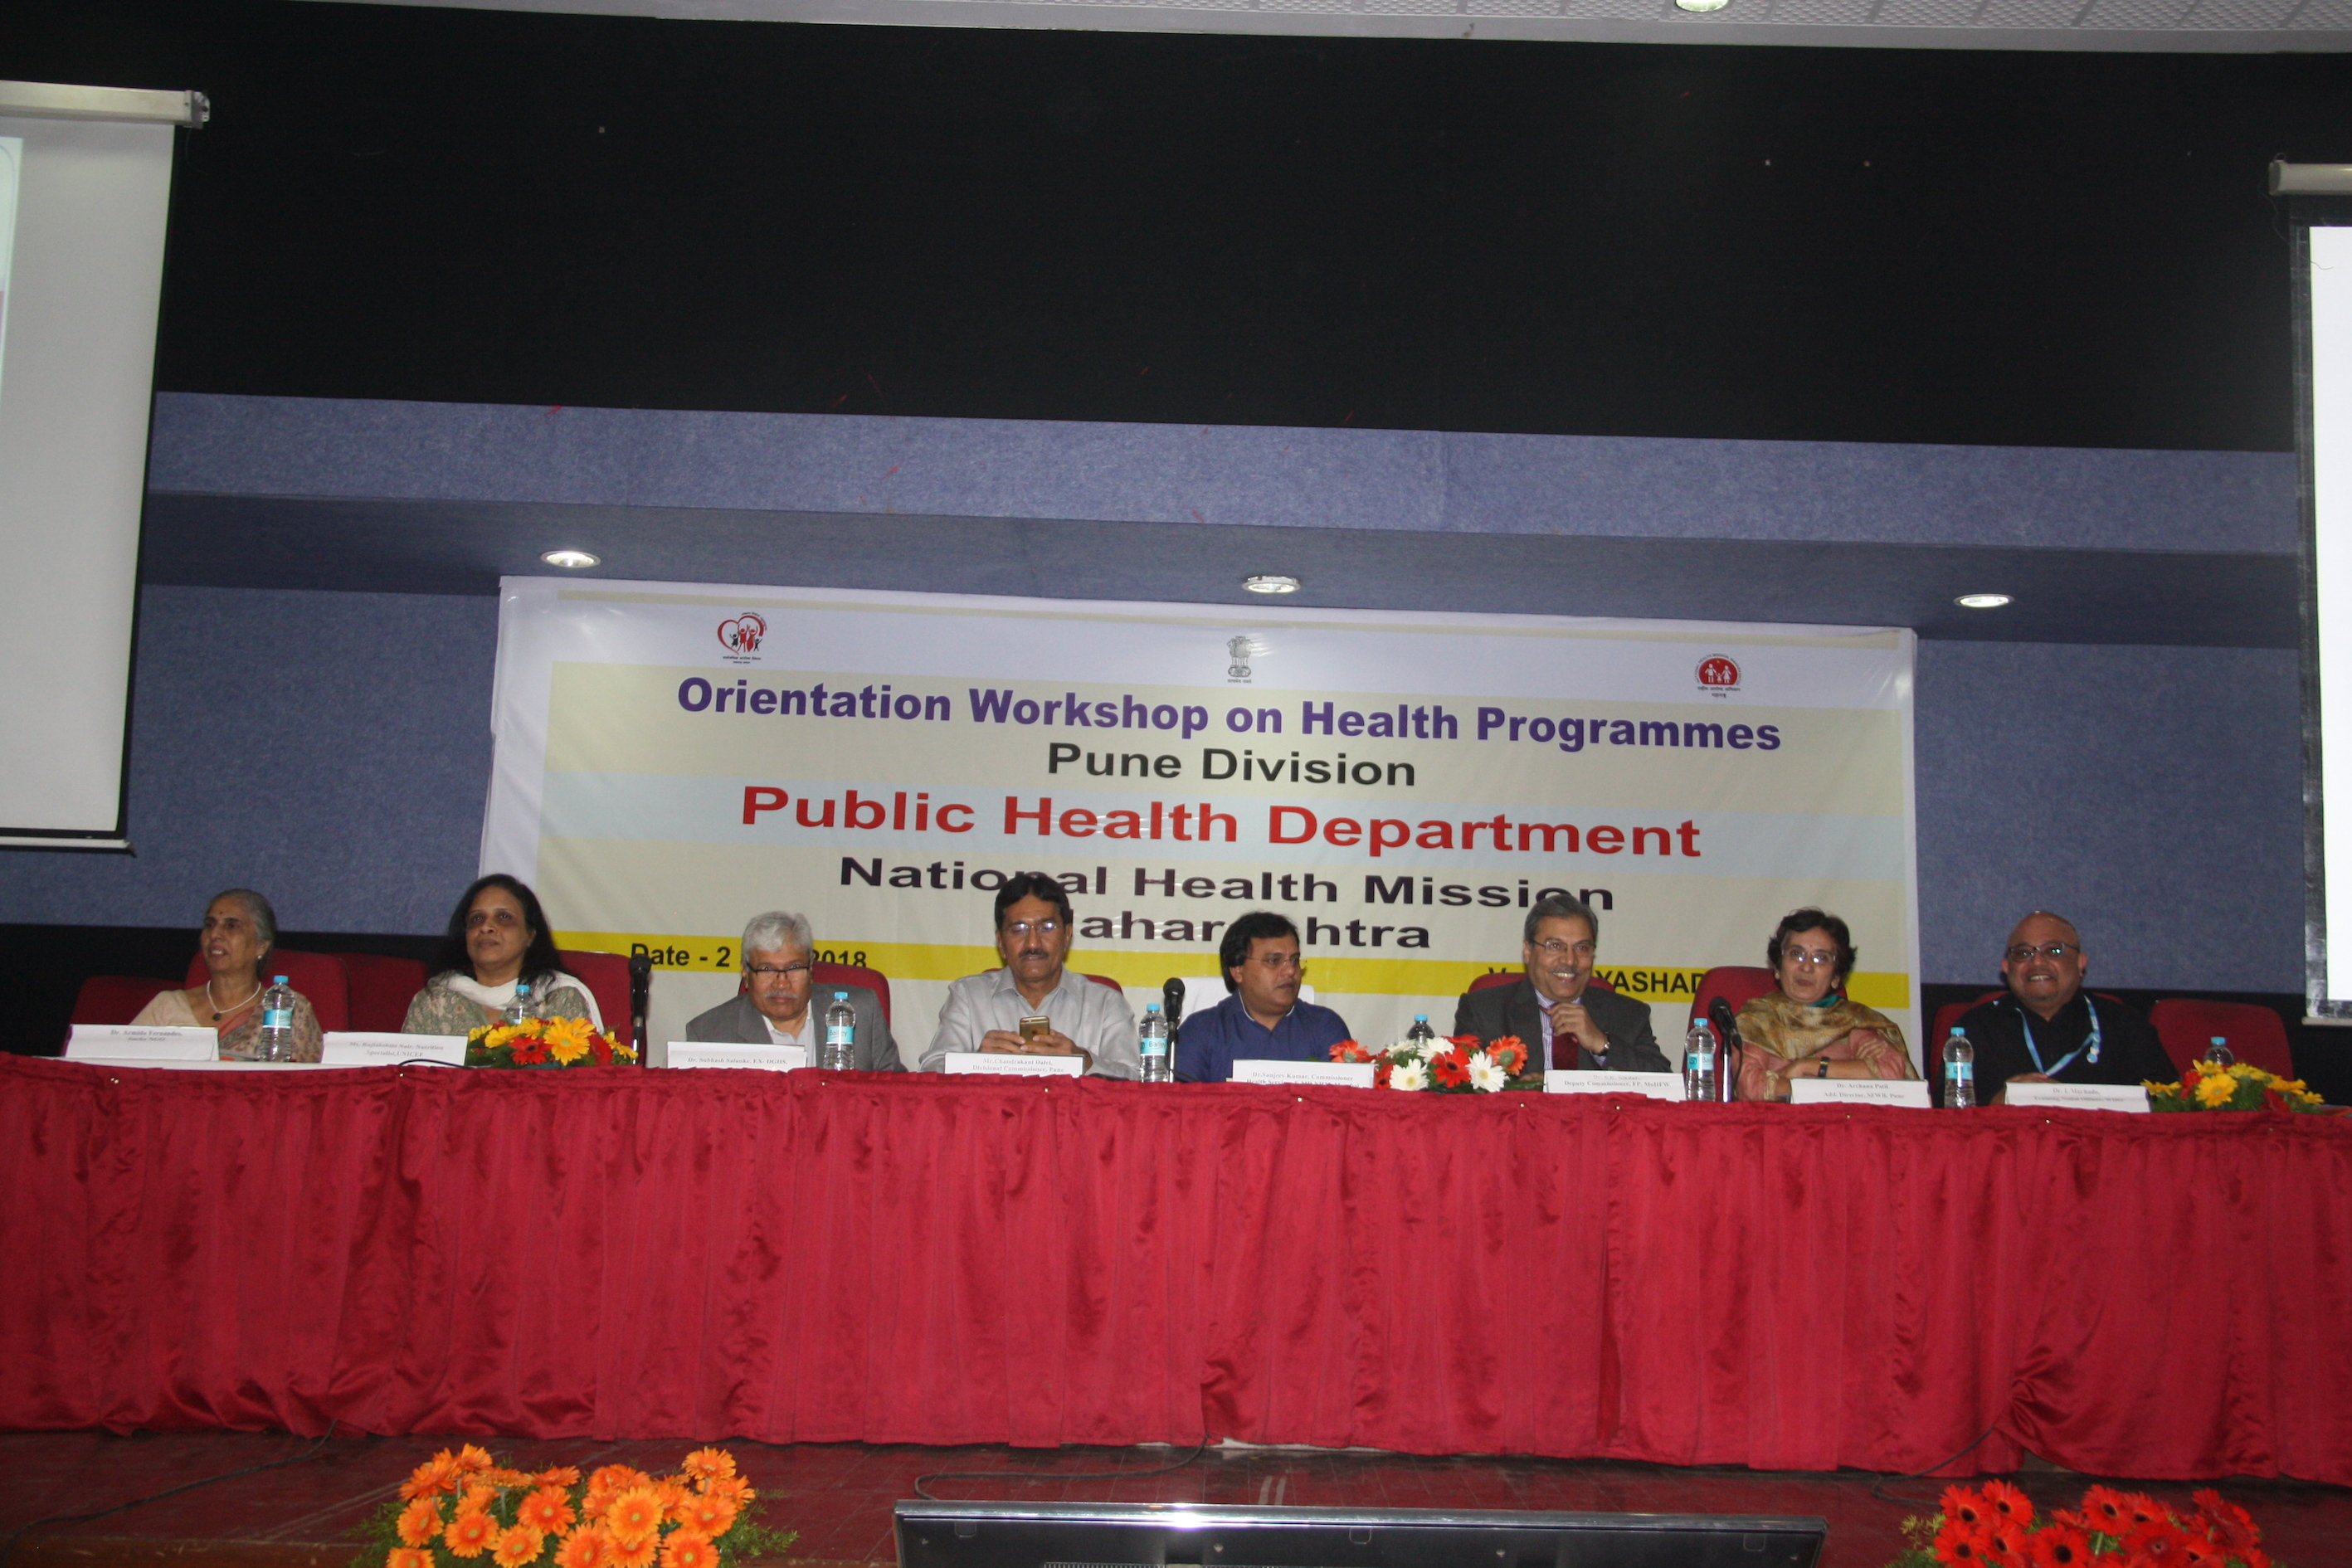 Family Planning (FP) was a key area of discussion during the recently held orientation workshop on health programmes in Pune, Maharashtra. Dr. S.K. Sikdar, D.C. & In-charge FP, GoI addressed a gathering of collectors, CEOs, municipal commissioners and zila parishad health officers on FP issues & areas of convergence